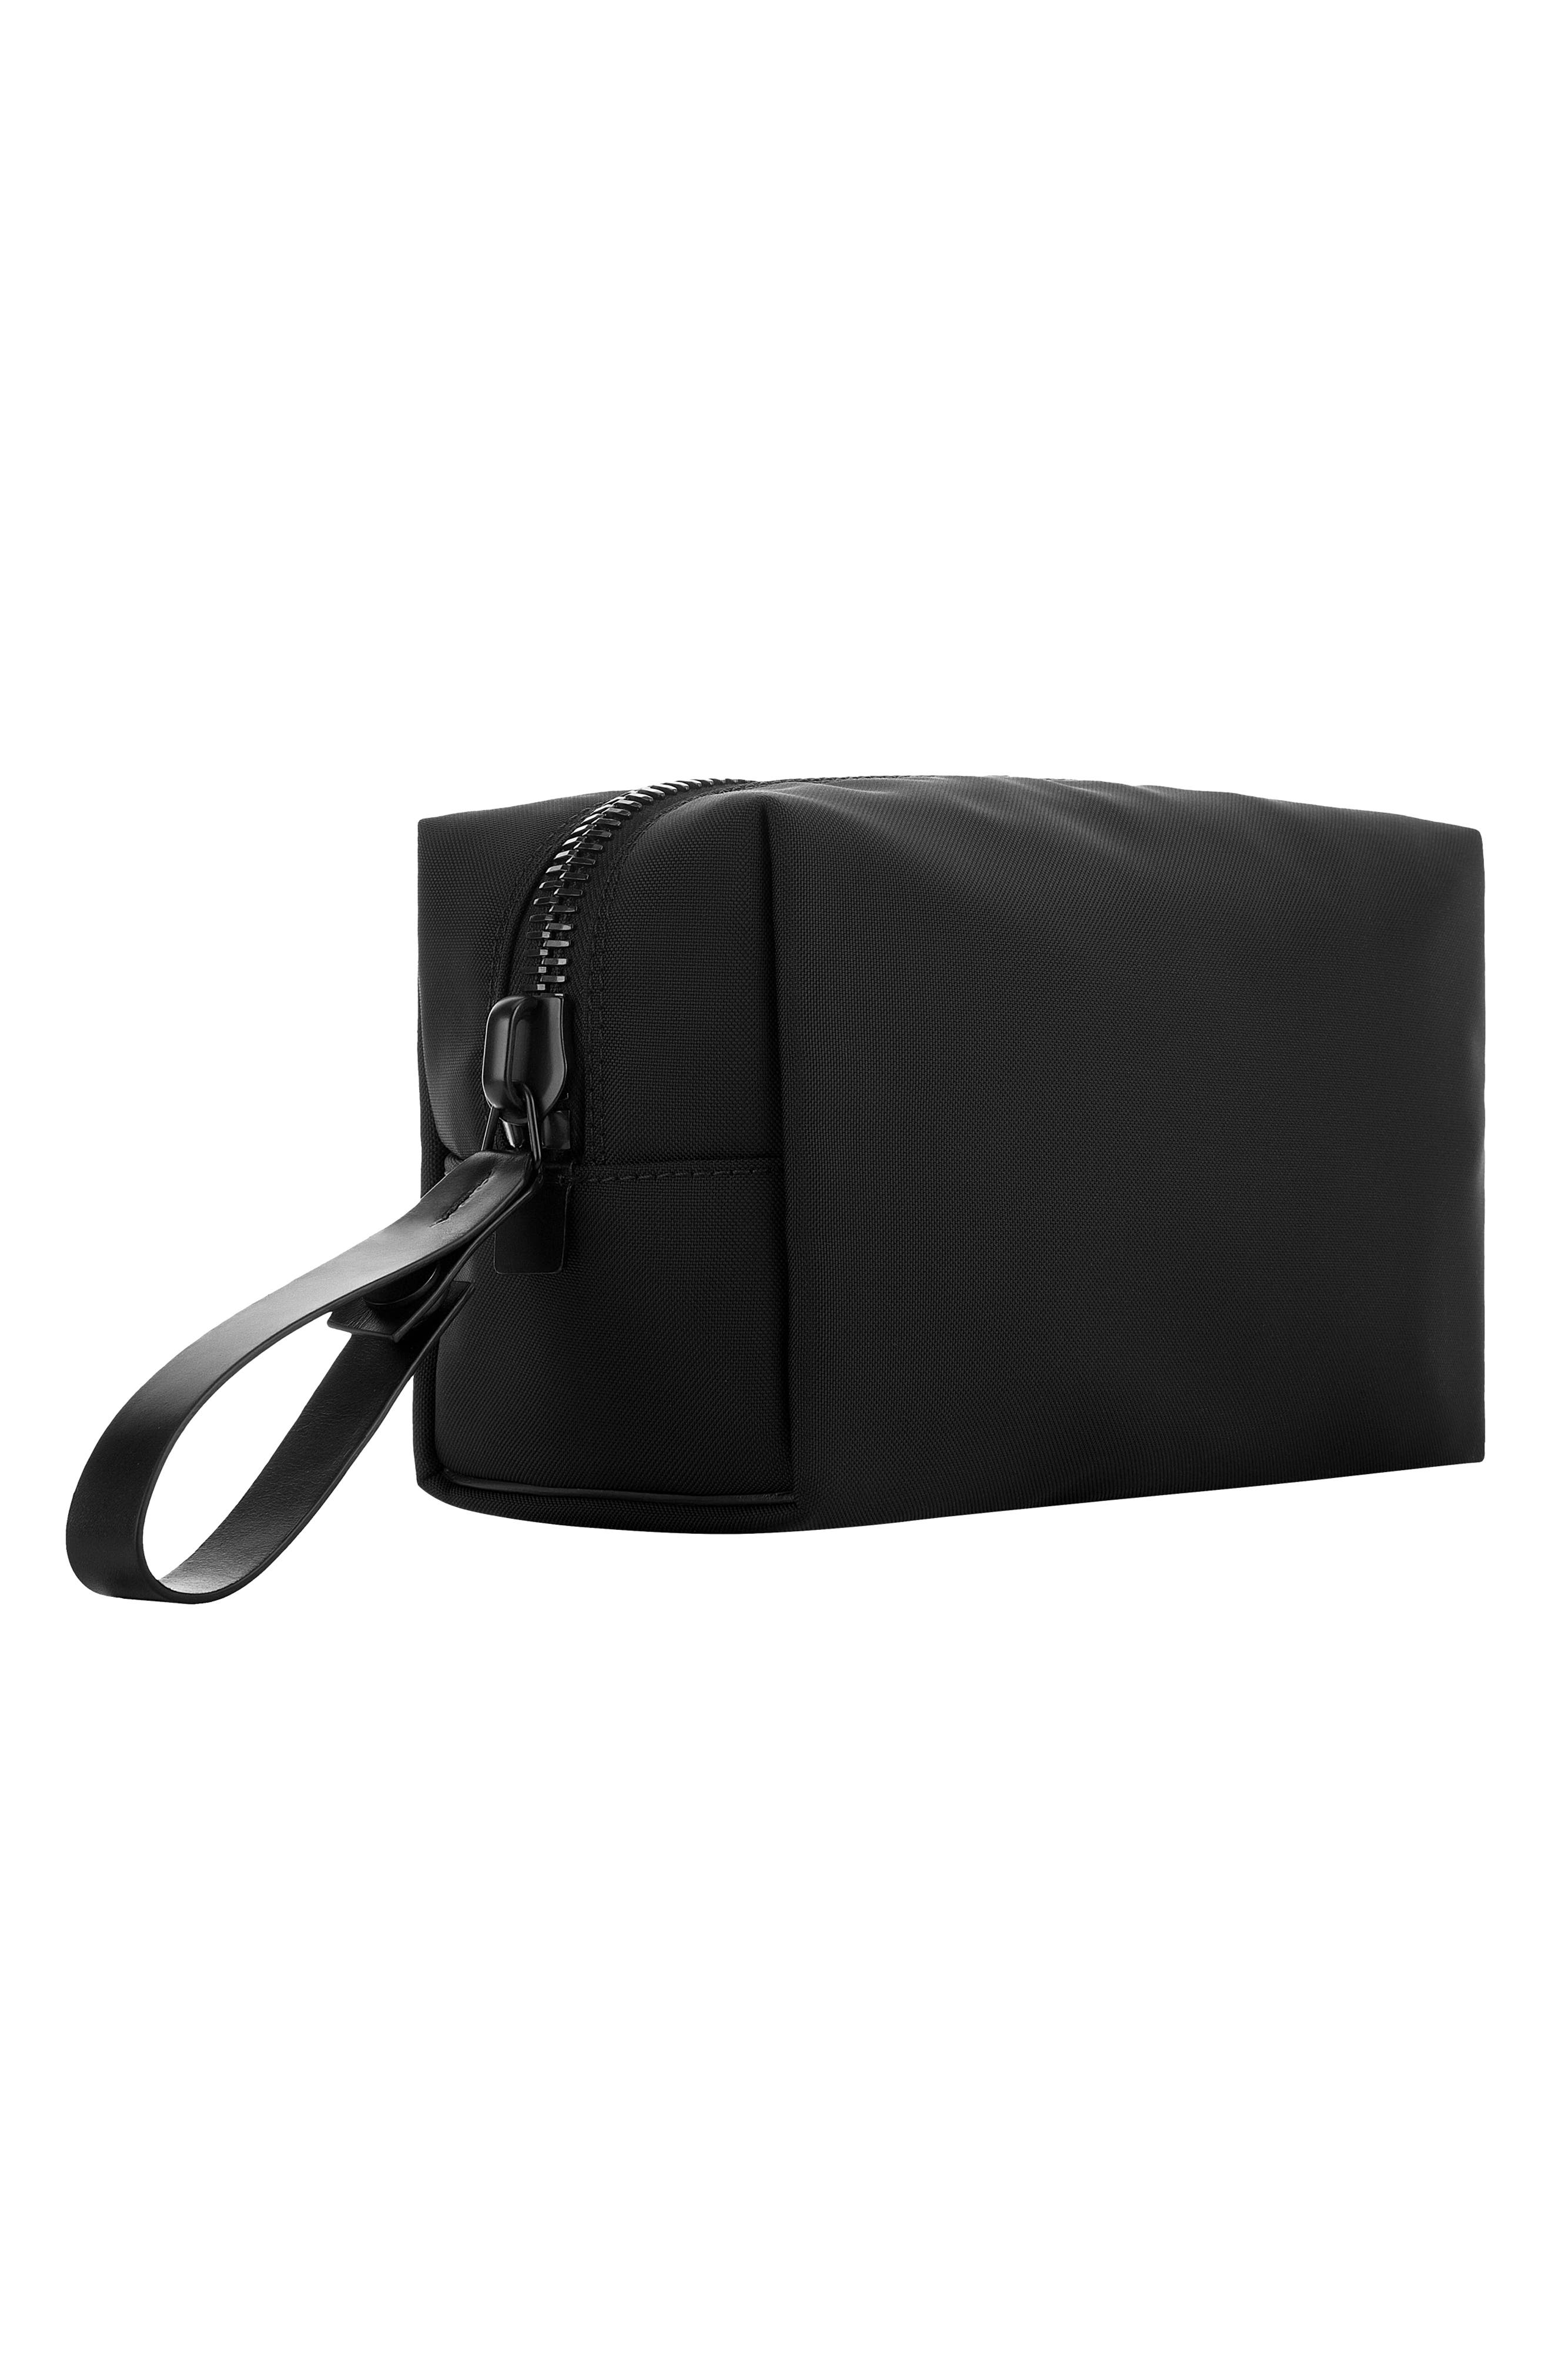 Nylon Dopp Kit,                             Alternate thumbnail 10, color,                             BLACK NYLON/ BLACK LEATHER